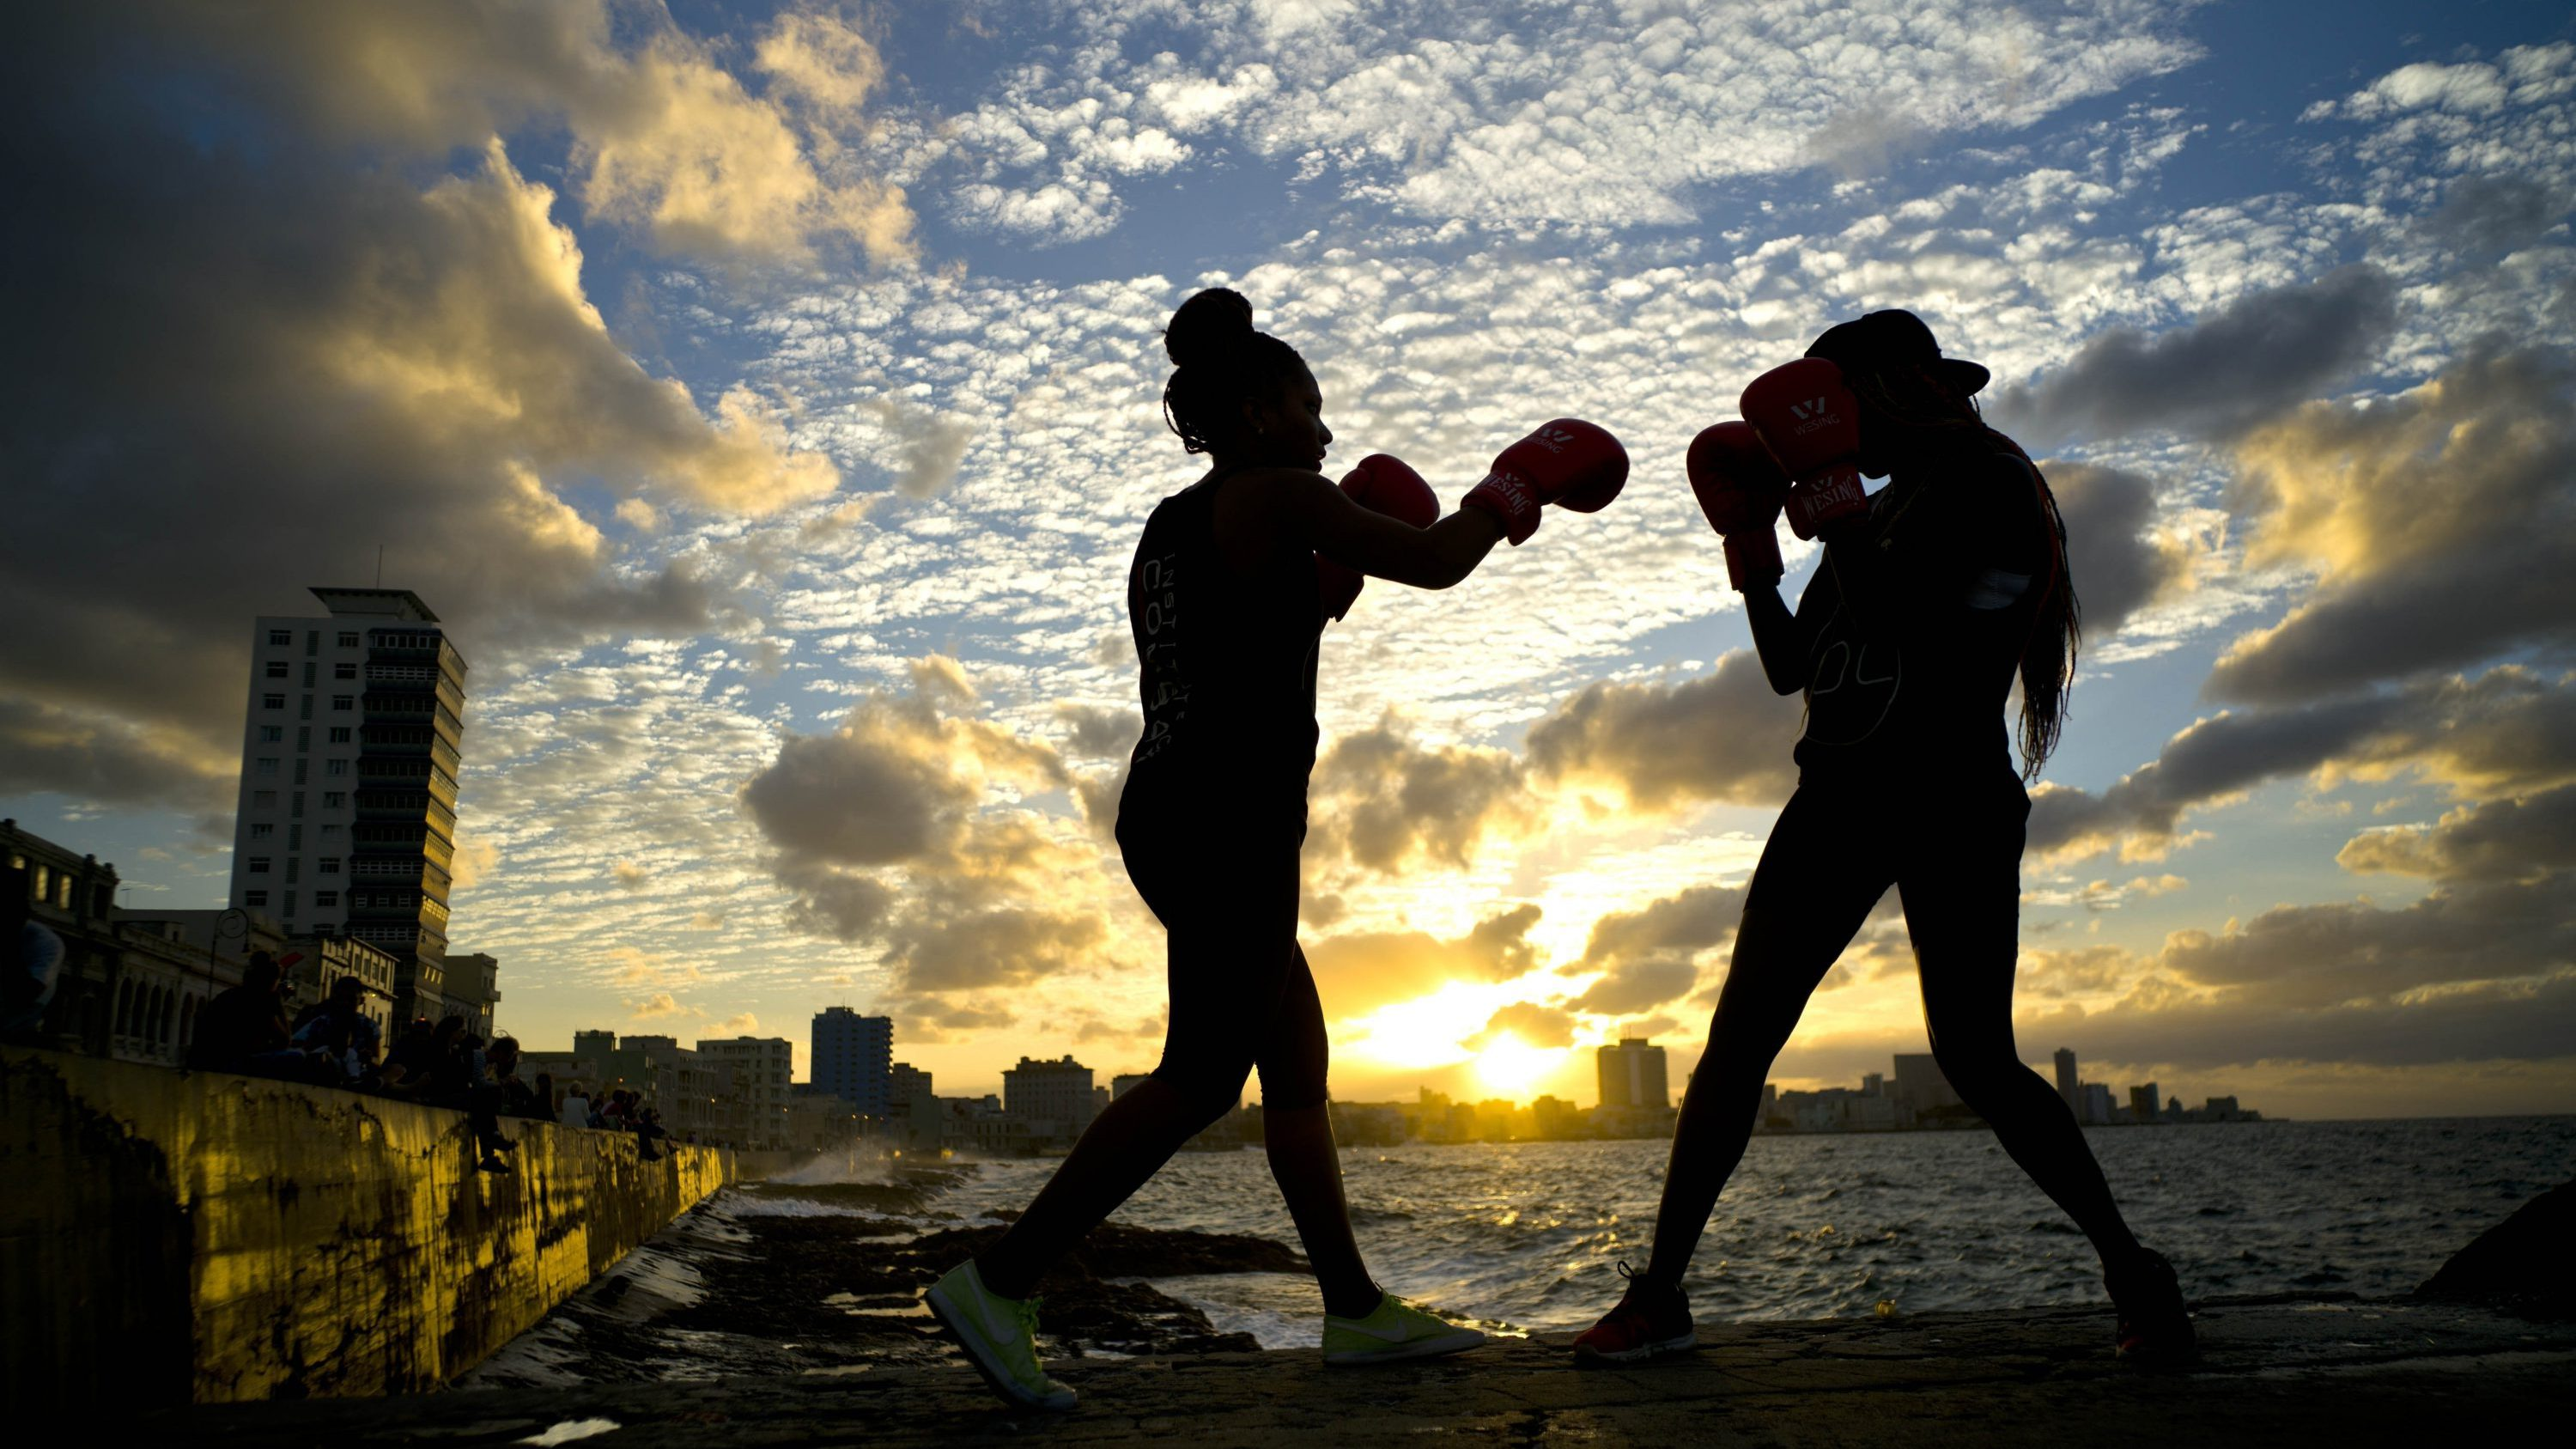 """In this Jan. 30, 2017 photo, boxers Idamelys Moreno, left, and Legnis Cala, train during a photo session on Havana's sea wall, in Cuba. Moreno and Cala are part of a group of up-and-coming female boxers on the island who want government support to form Cuba's first female boxing team and help dispel a decades-old belief once summed up by a former top coach: """"Cuban women are meant to show the beauty of their face, not receive punches."""""""